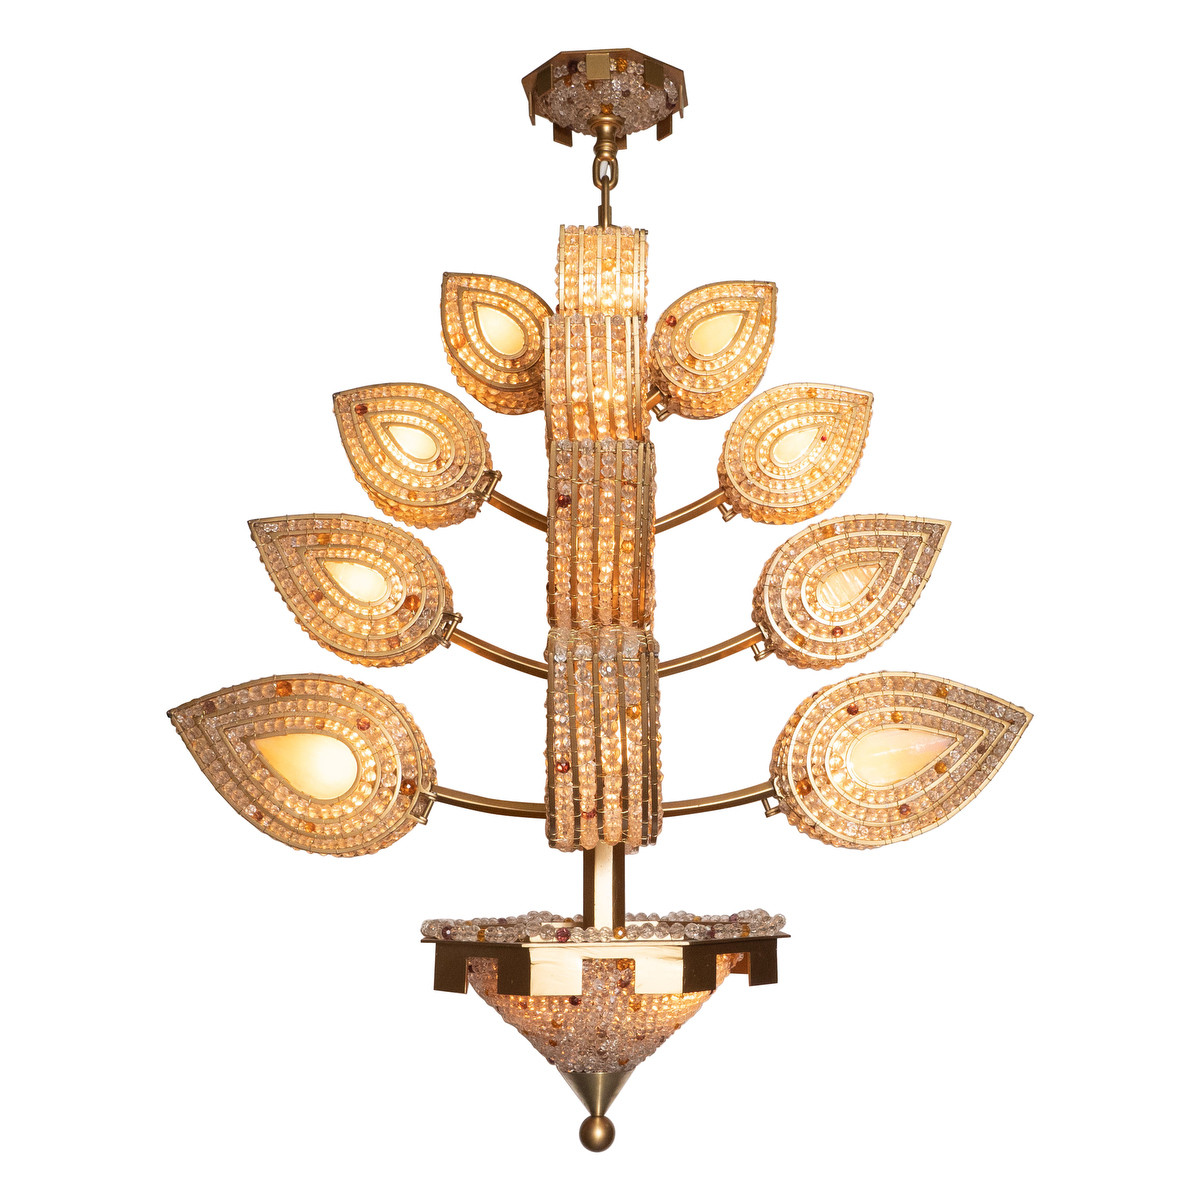 Beaded and stained glass foliate motif chandelier